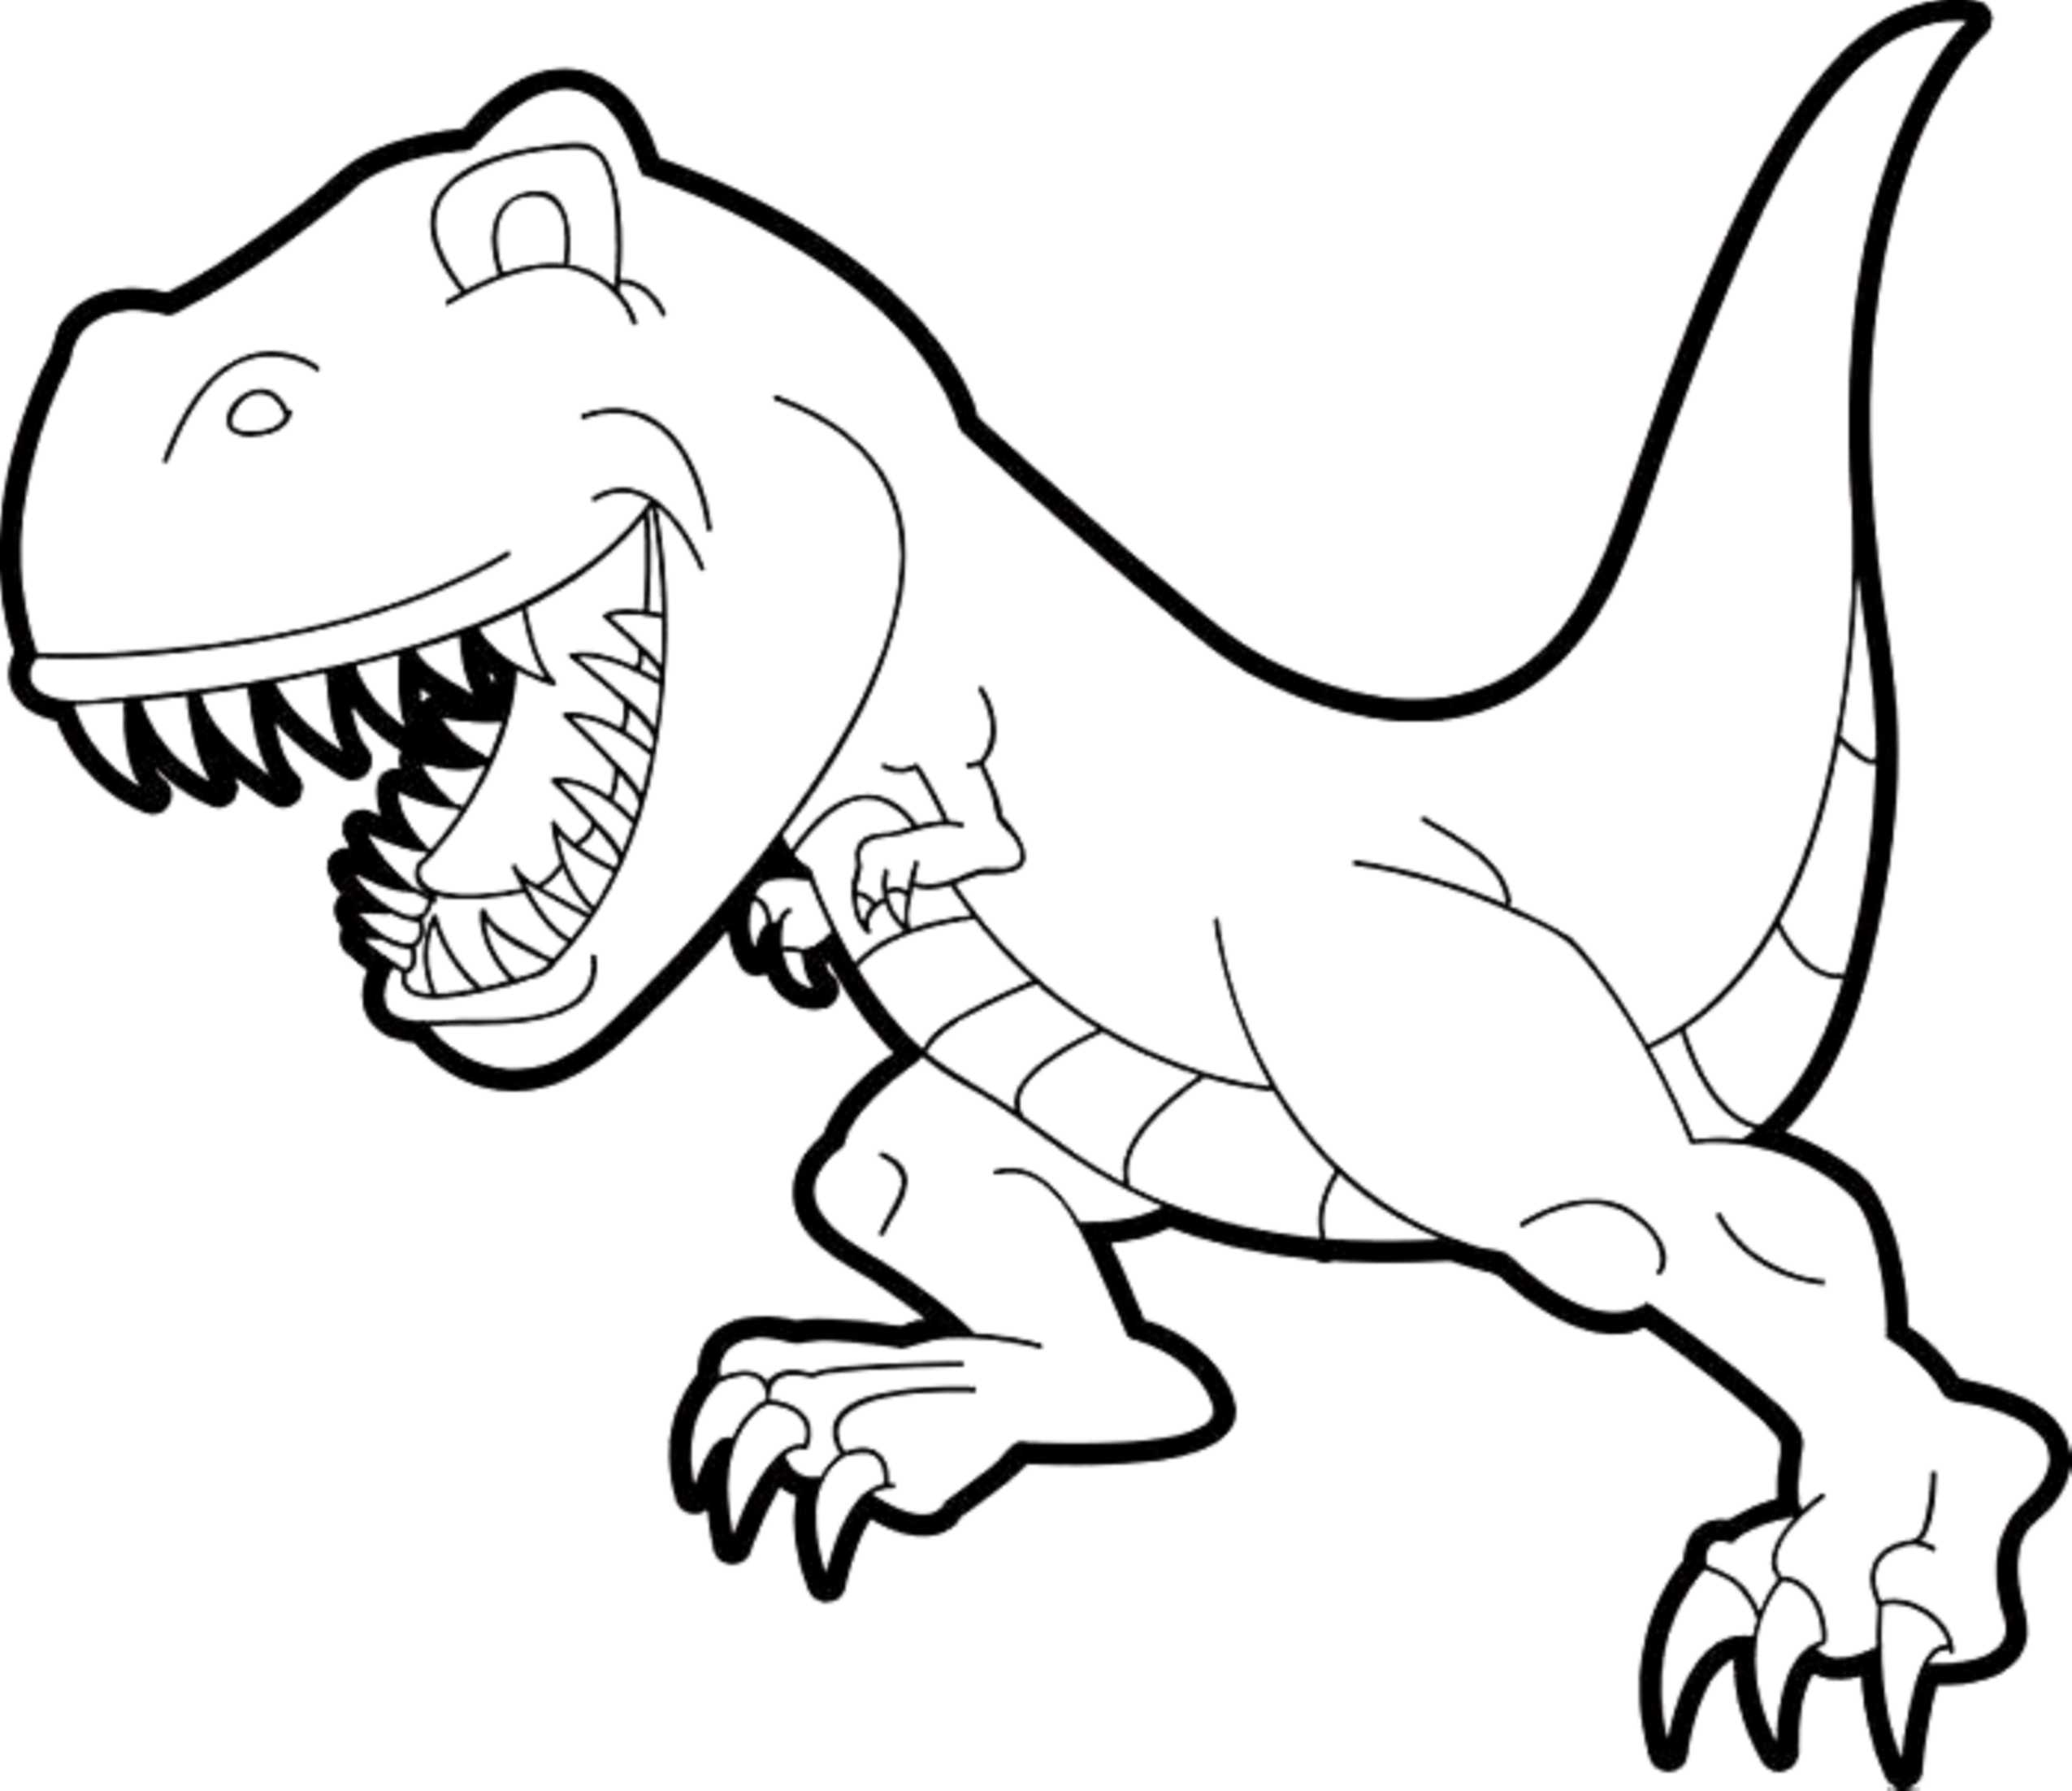 colouring in dinosaurs cute dinosaur coloring pages coloring home dinosaurs colouring in